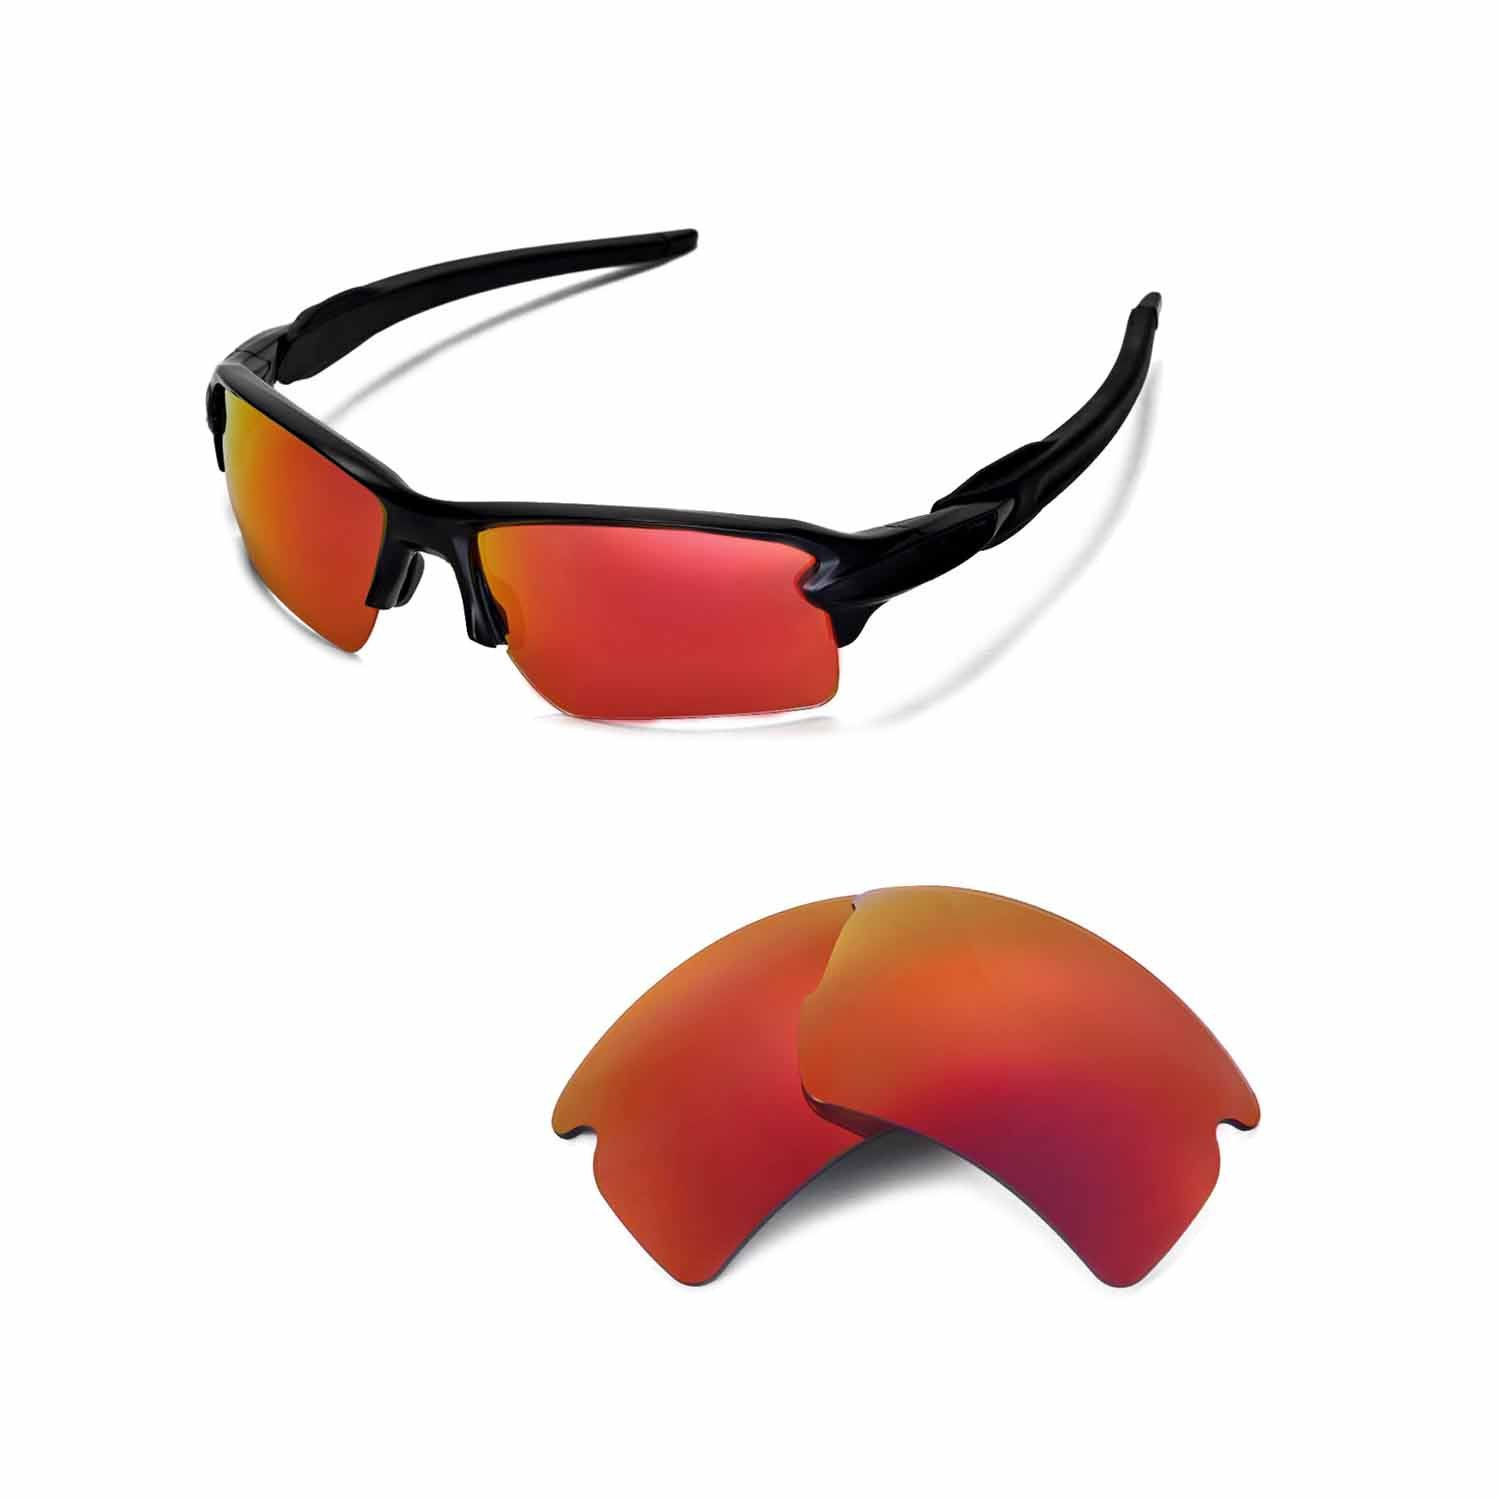 0dac2c8c9ecd8 Walleva Replacement Lenses for Oakley Flak 2.0 XL Sunglasses - 26 Options  Available